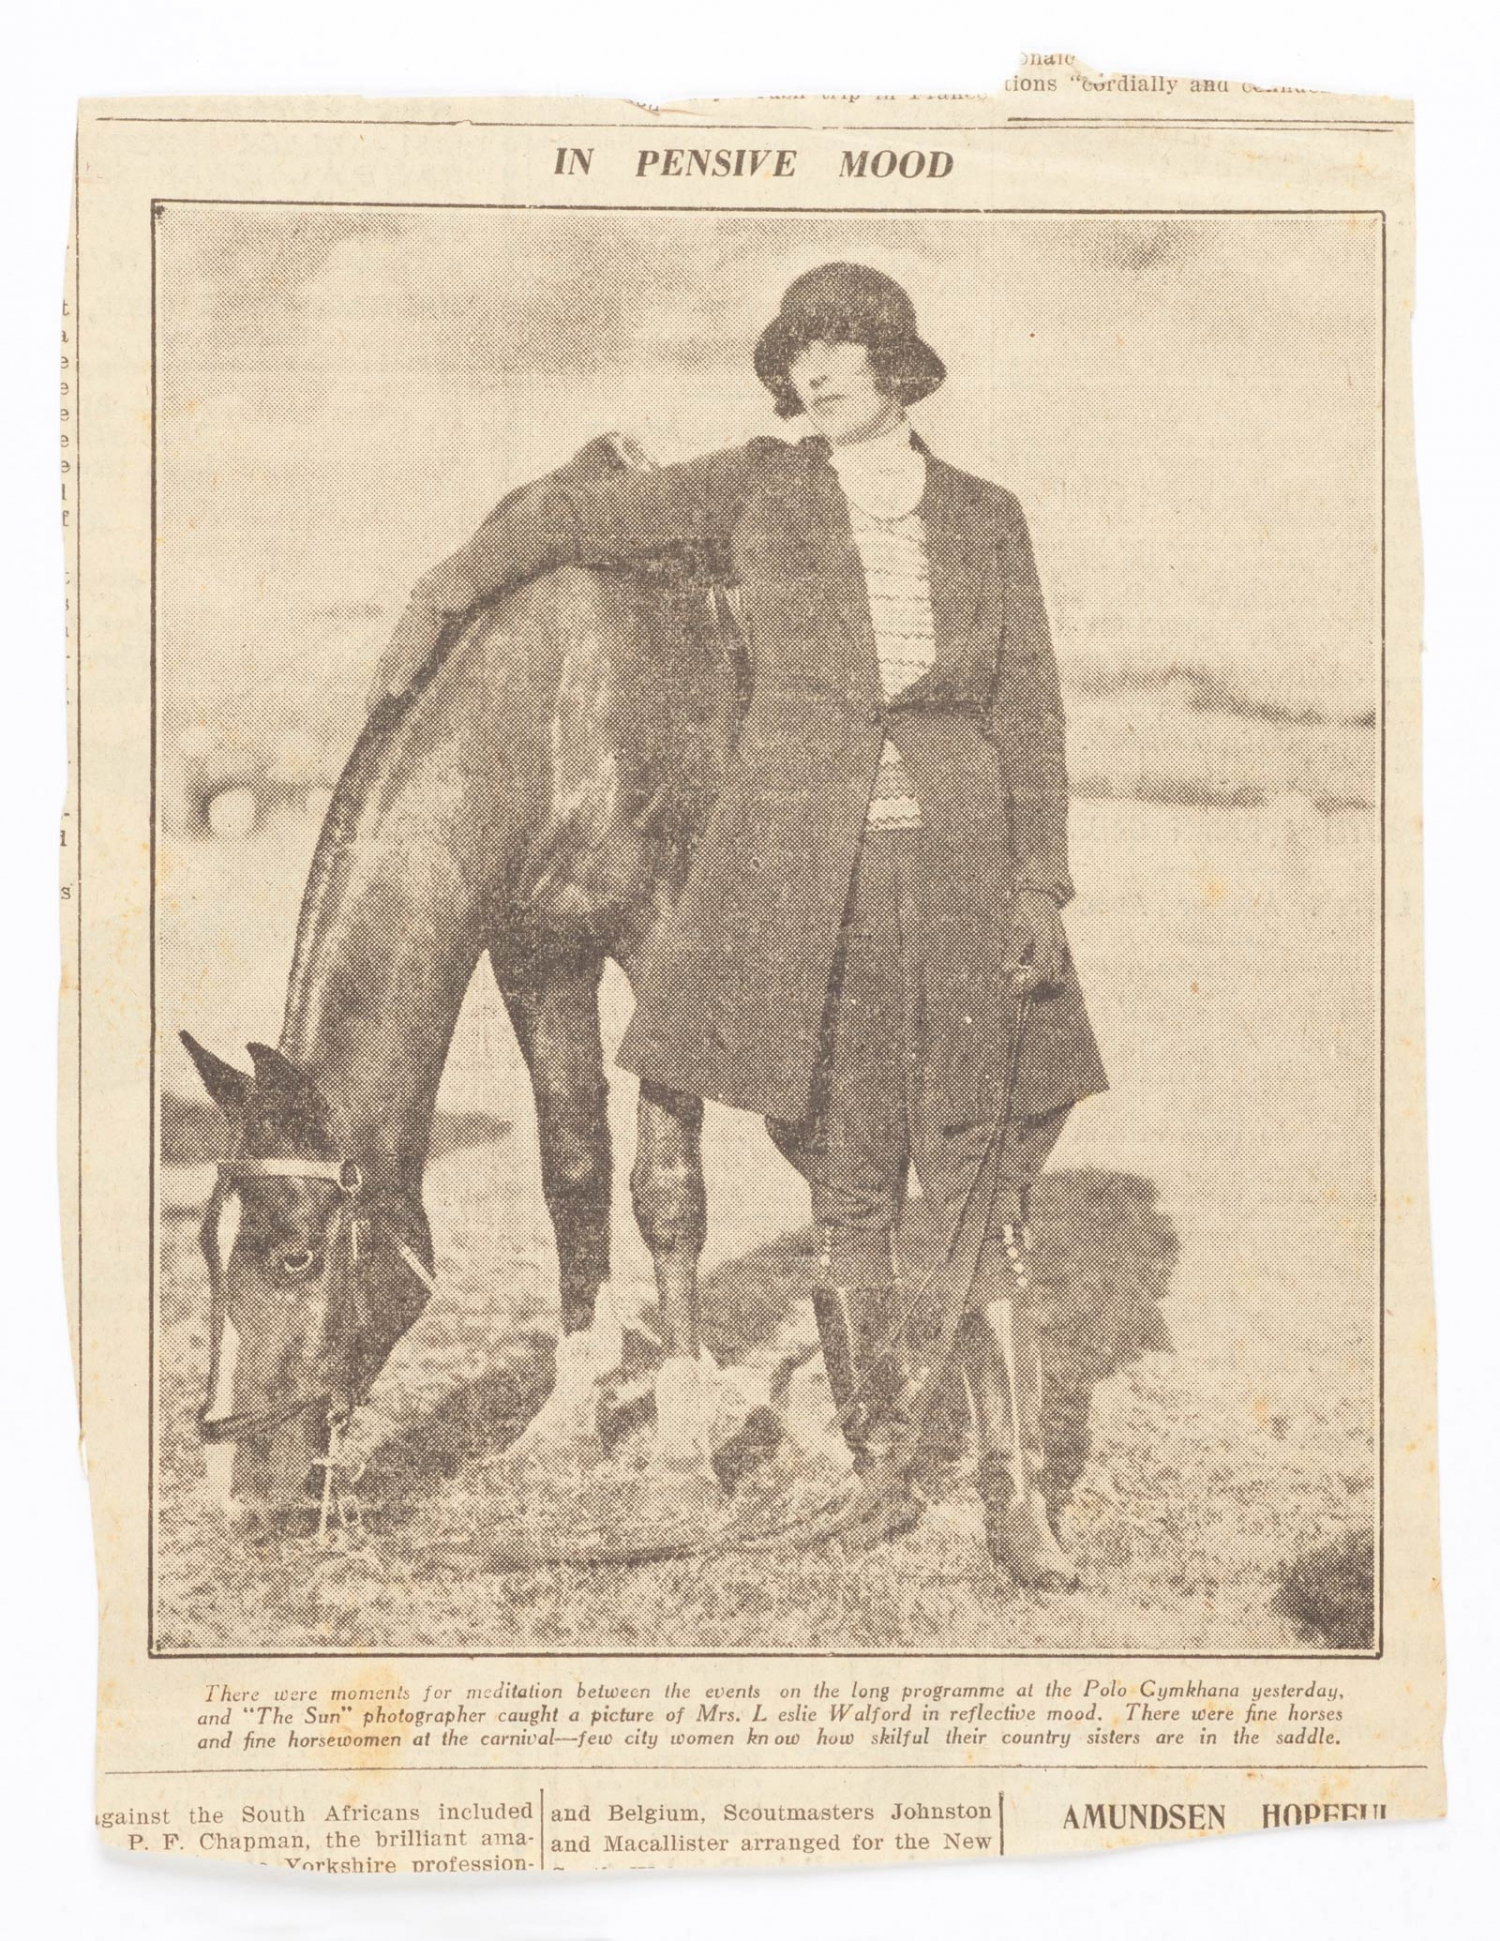 Newspaper clipping of Mrs Leslie Walford (Dora Walford) with a horse at a Polo Gymkhana, undated